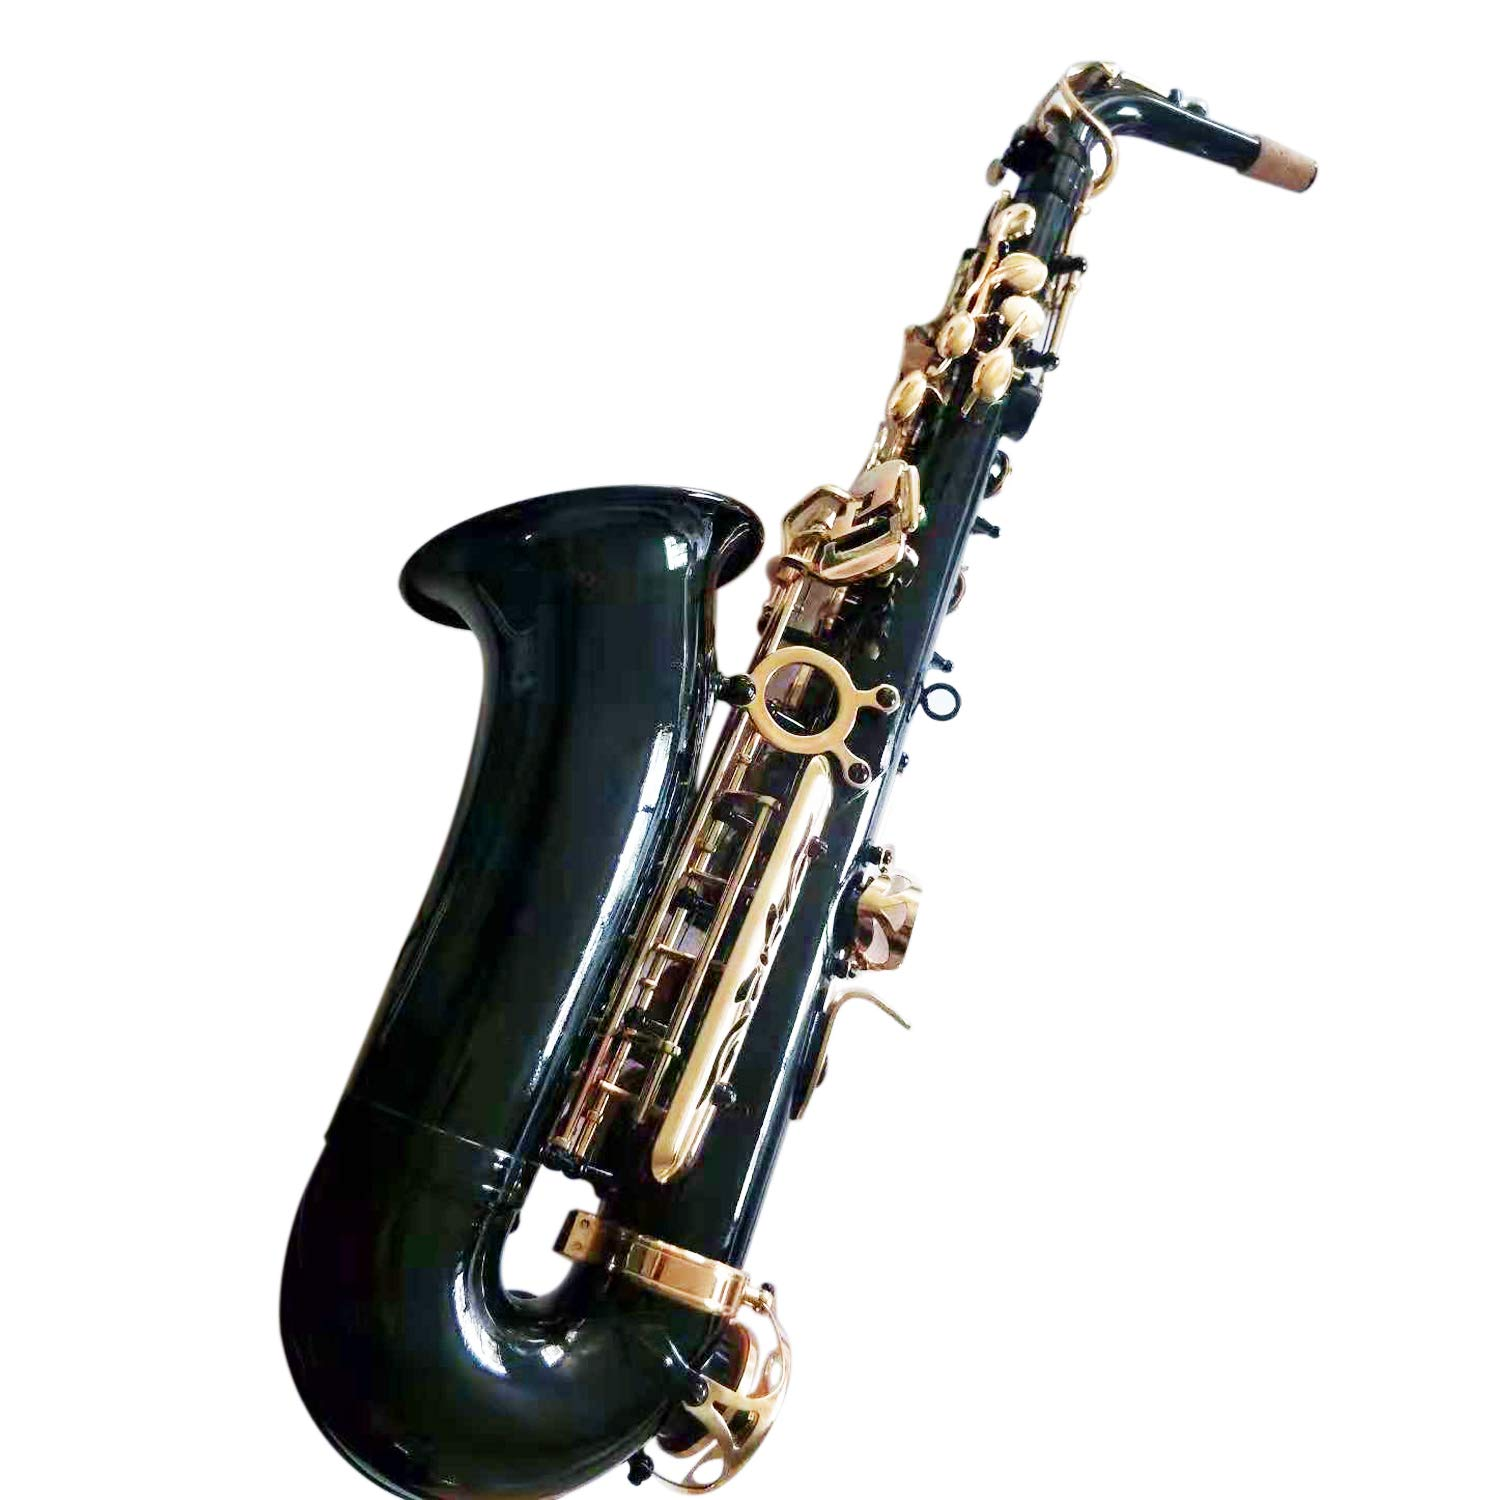 Flanger F-980 Black Nickel Plated Keys E Flat Professional Alto Saxophone with Tuner, Case, Mouthpiece